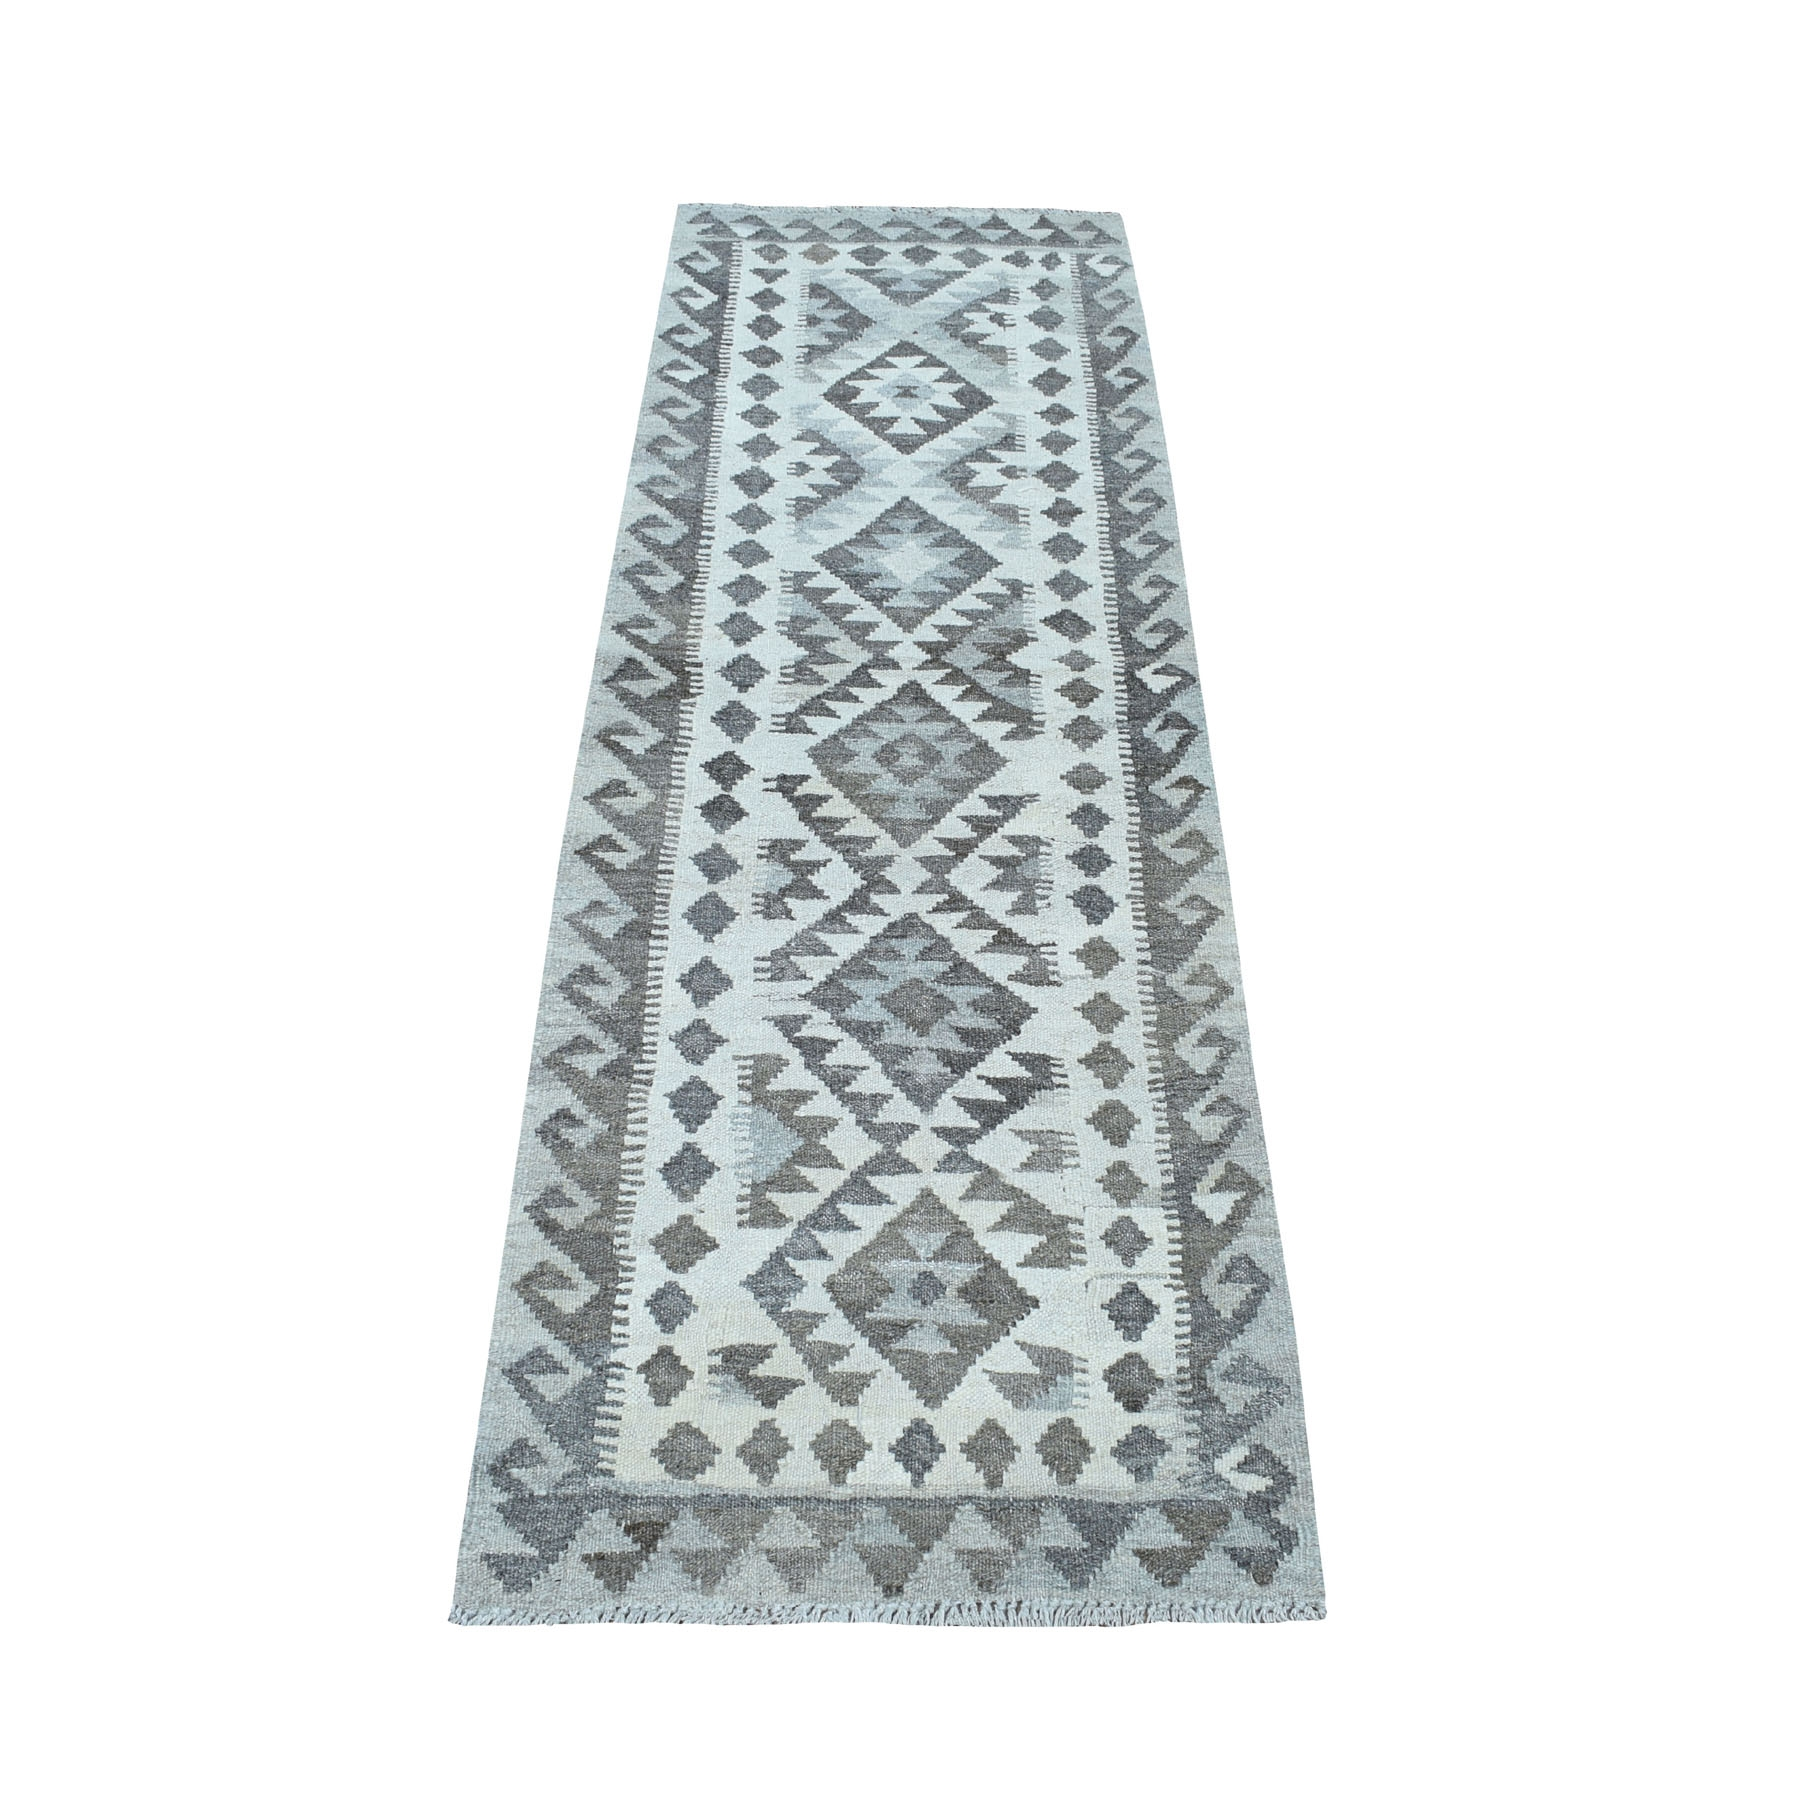 """2'1""""X6'5"""" Undyed Natural Wool Afghan Kilim Reversible Hand Woven Runner Oriental Rug moaec0e7"""